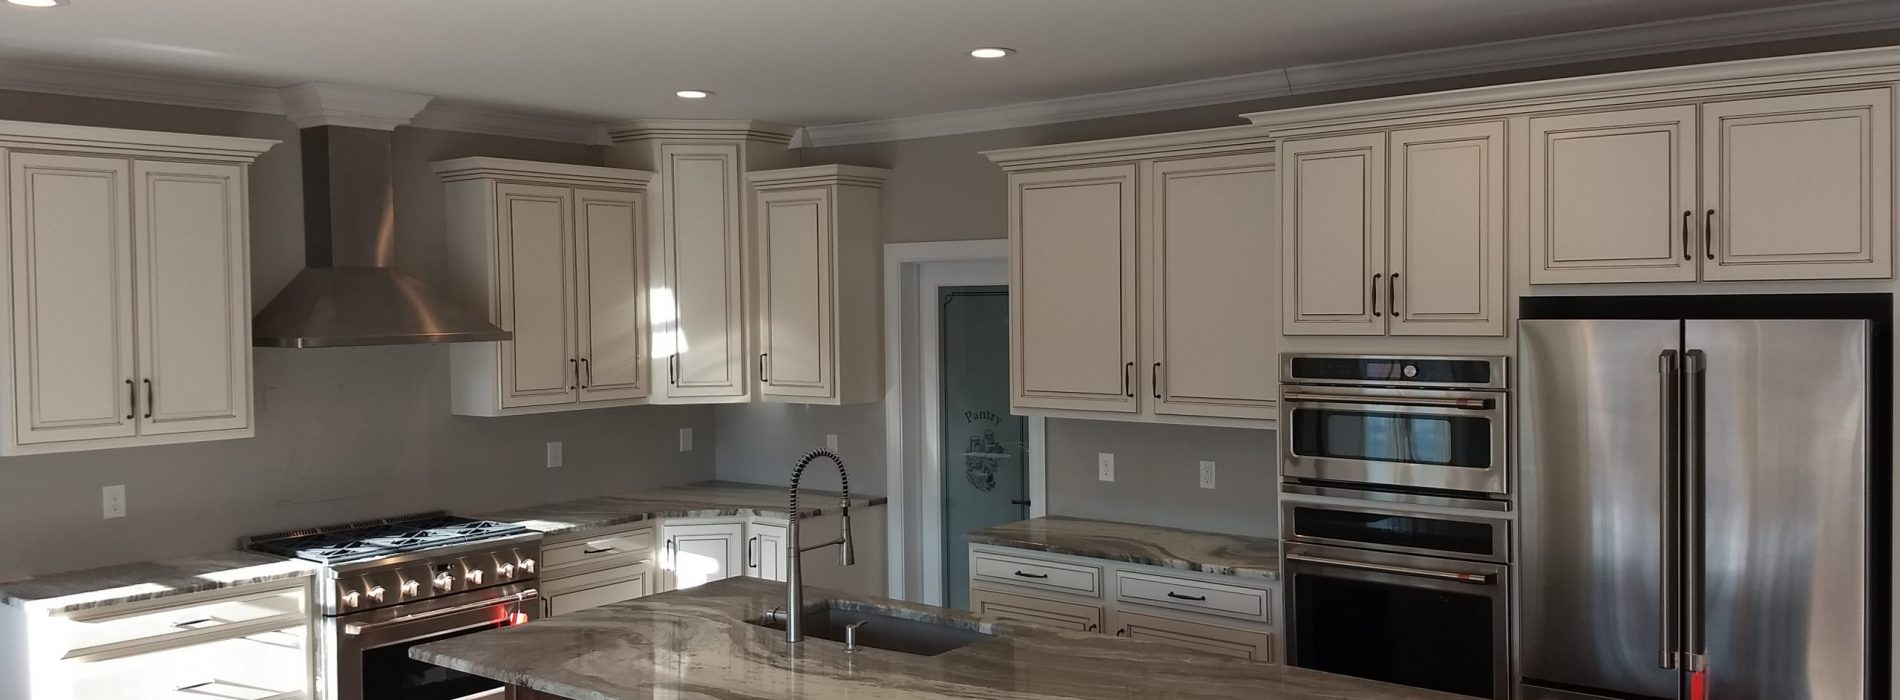 kitchen in the process of a remodel